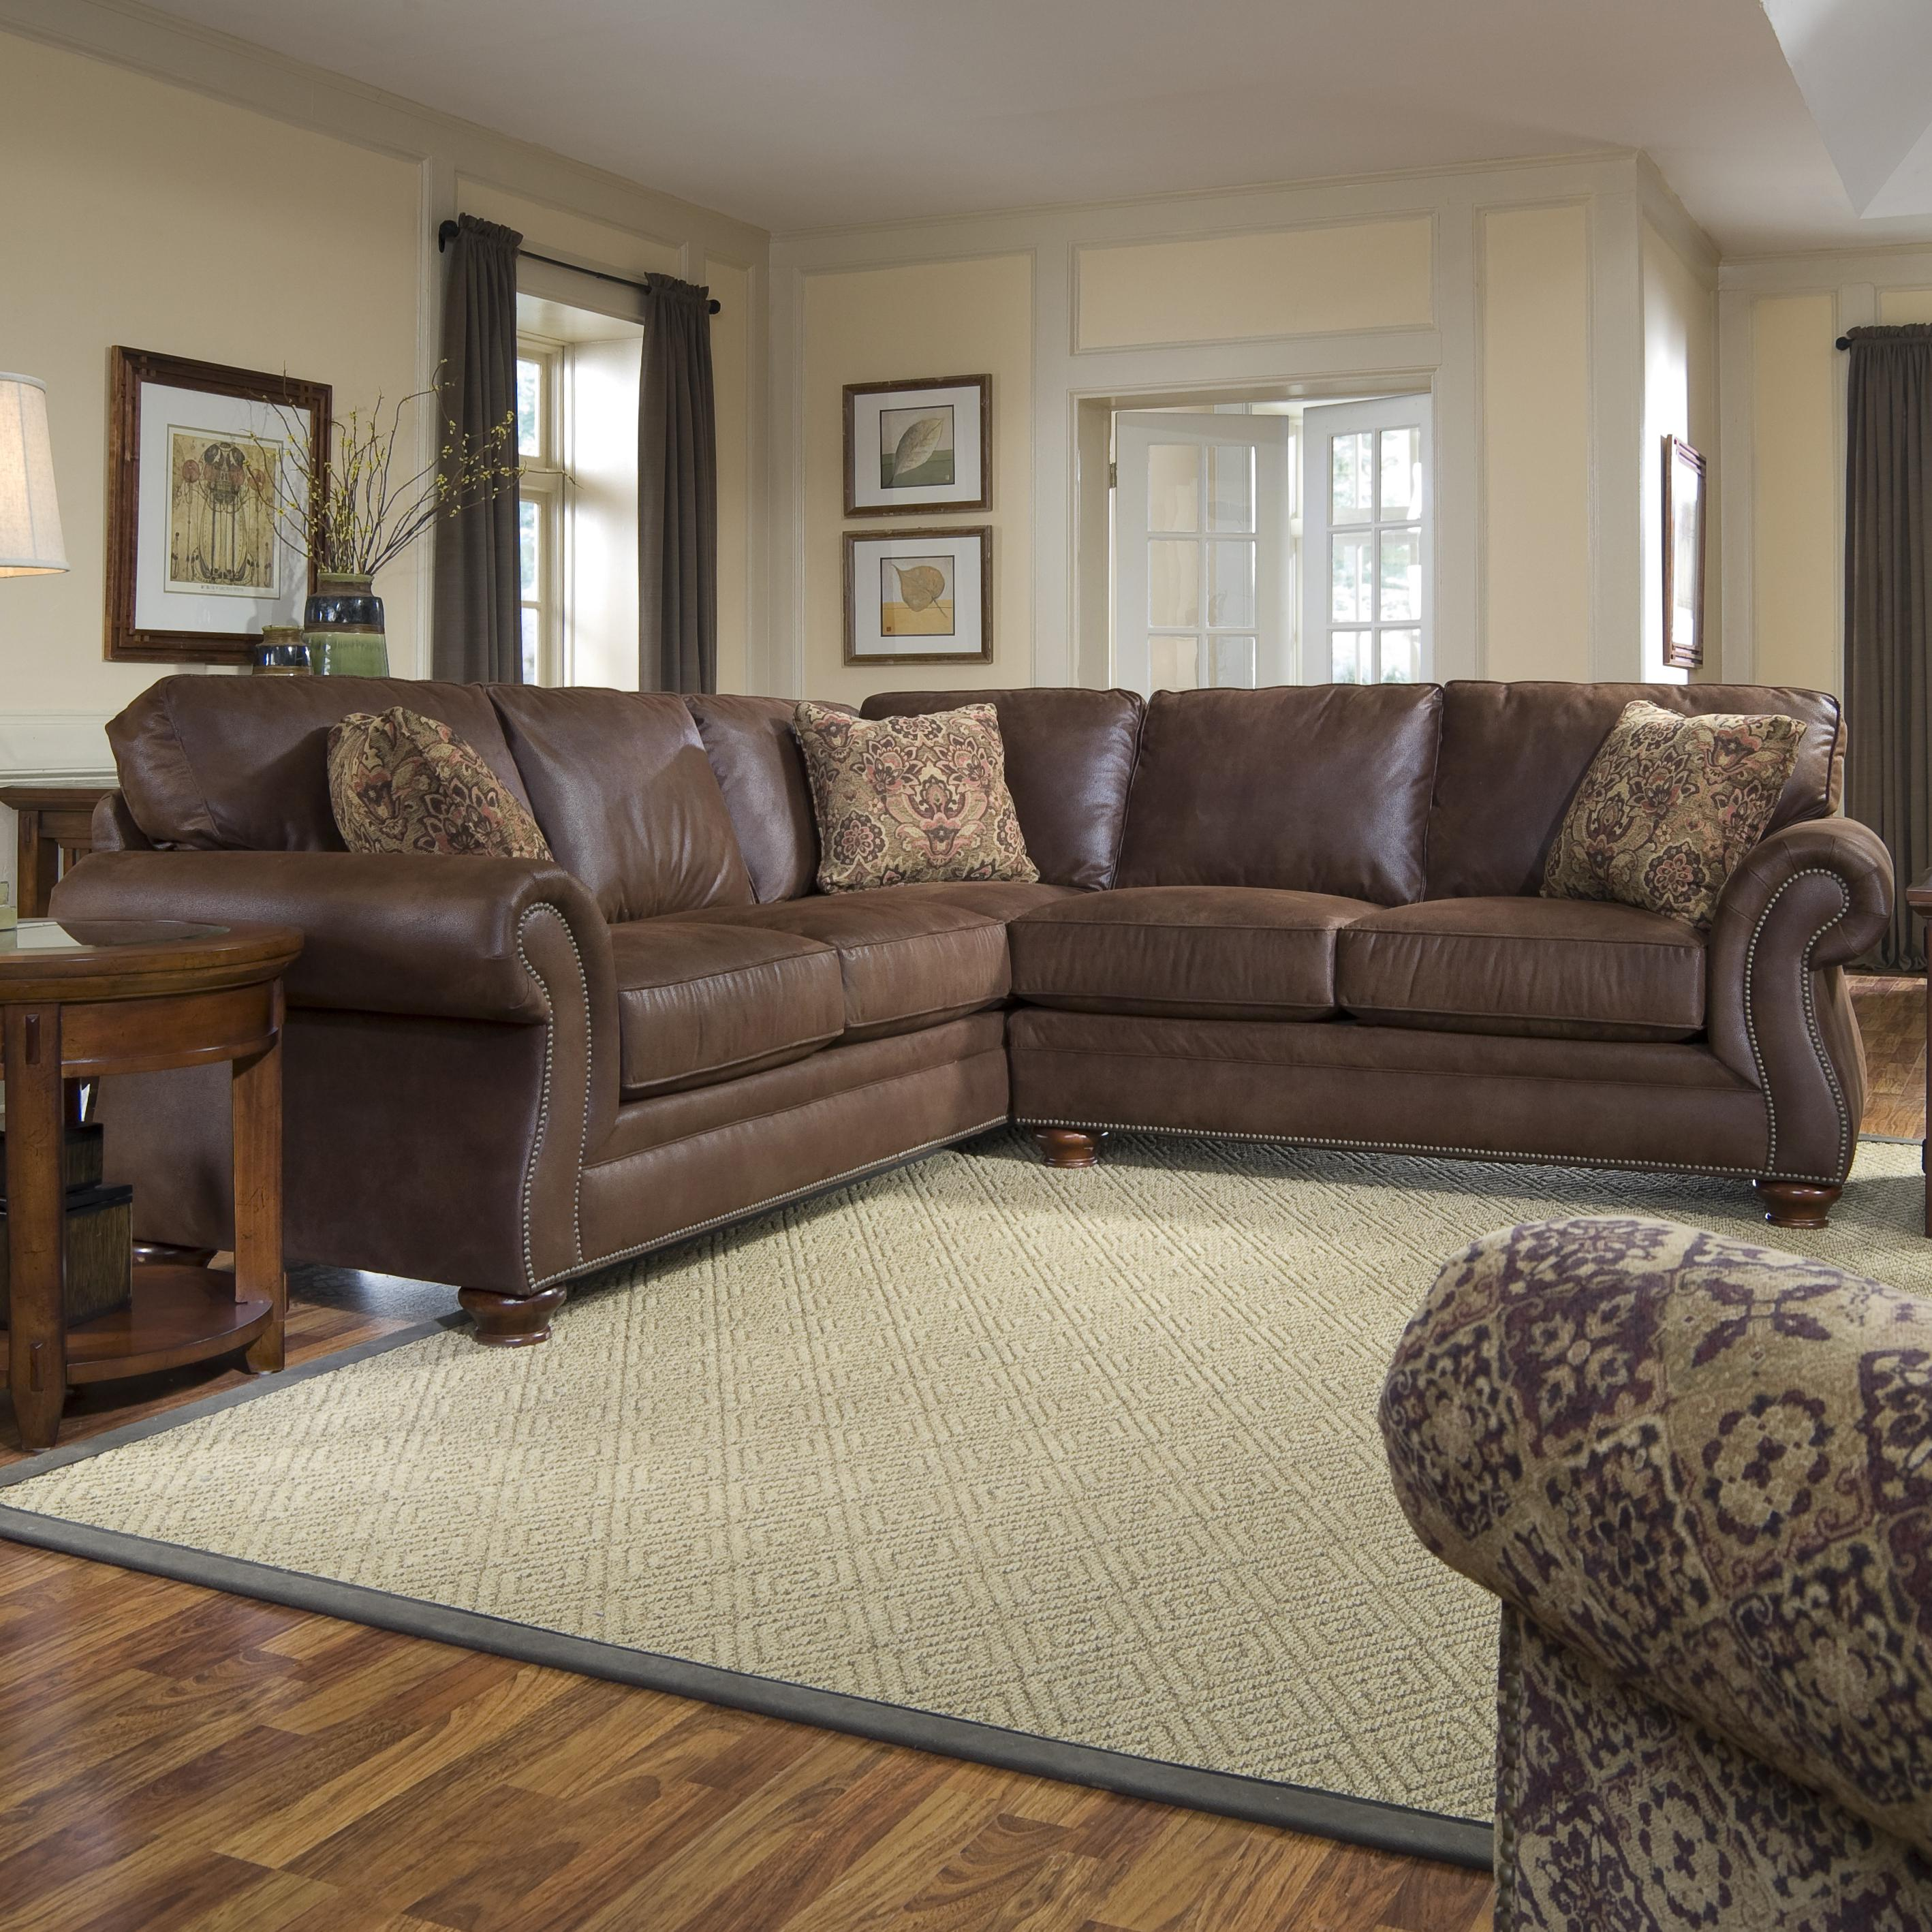 Furniture Fayetteville | Fayetteville Furniture Outlet | Bullard Furniture